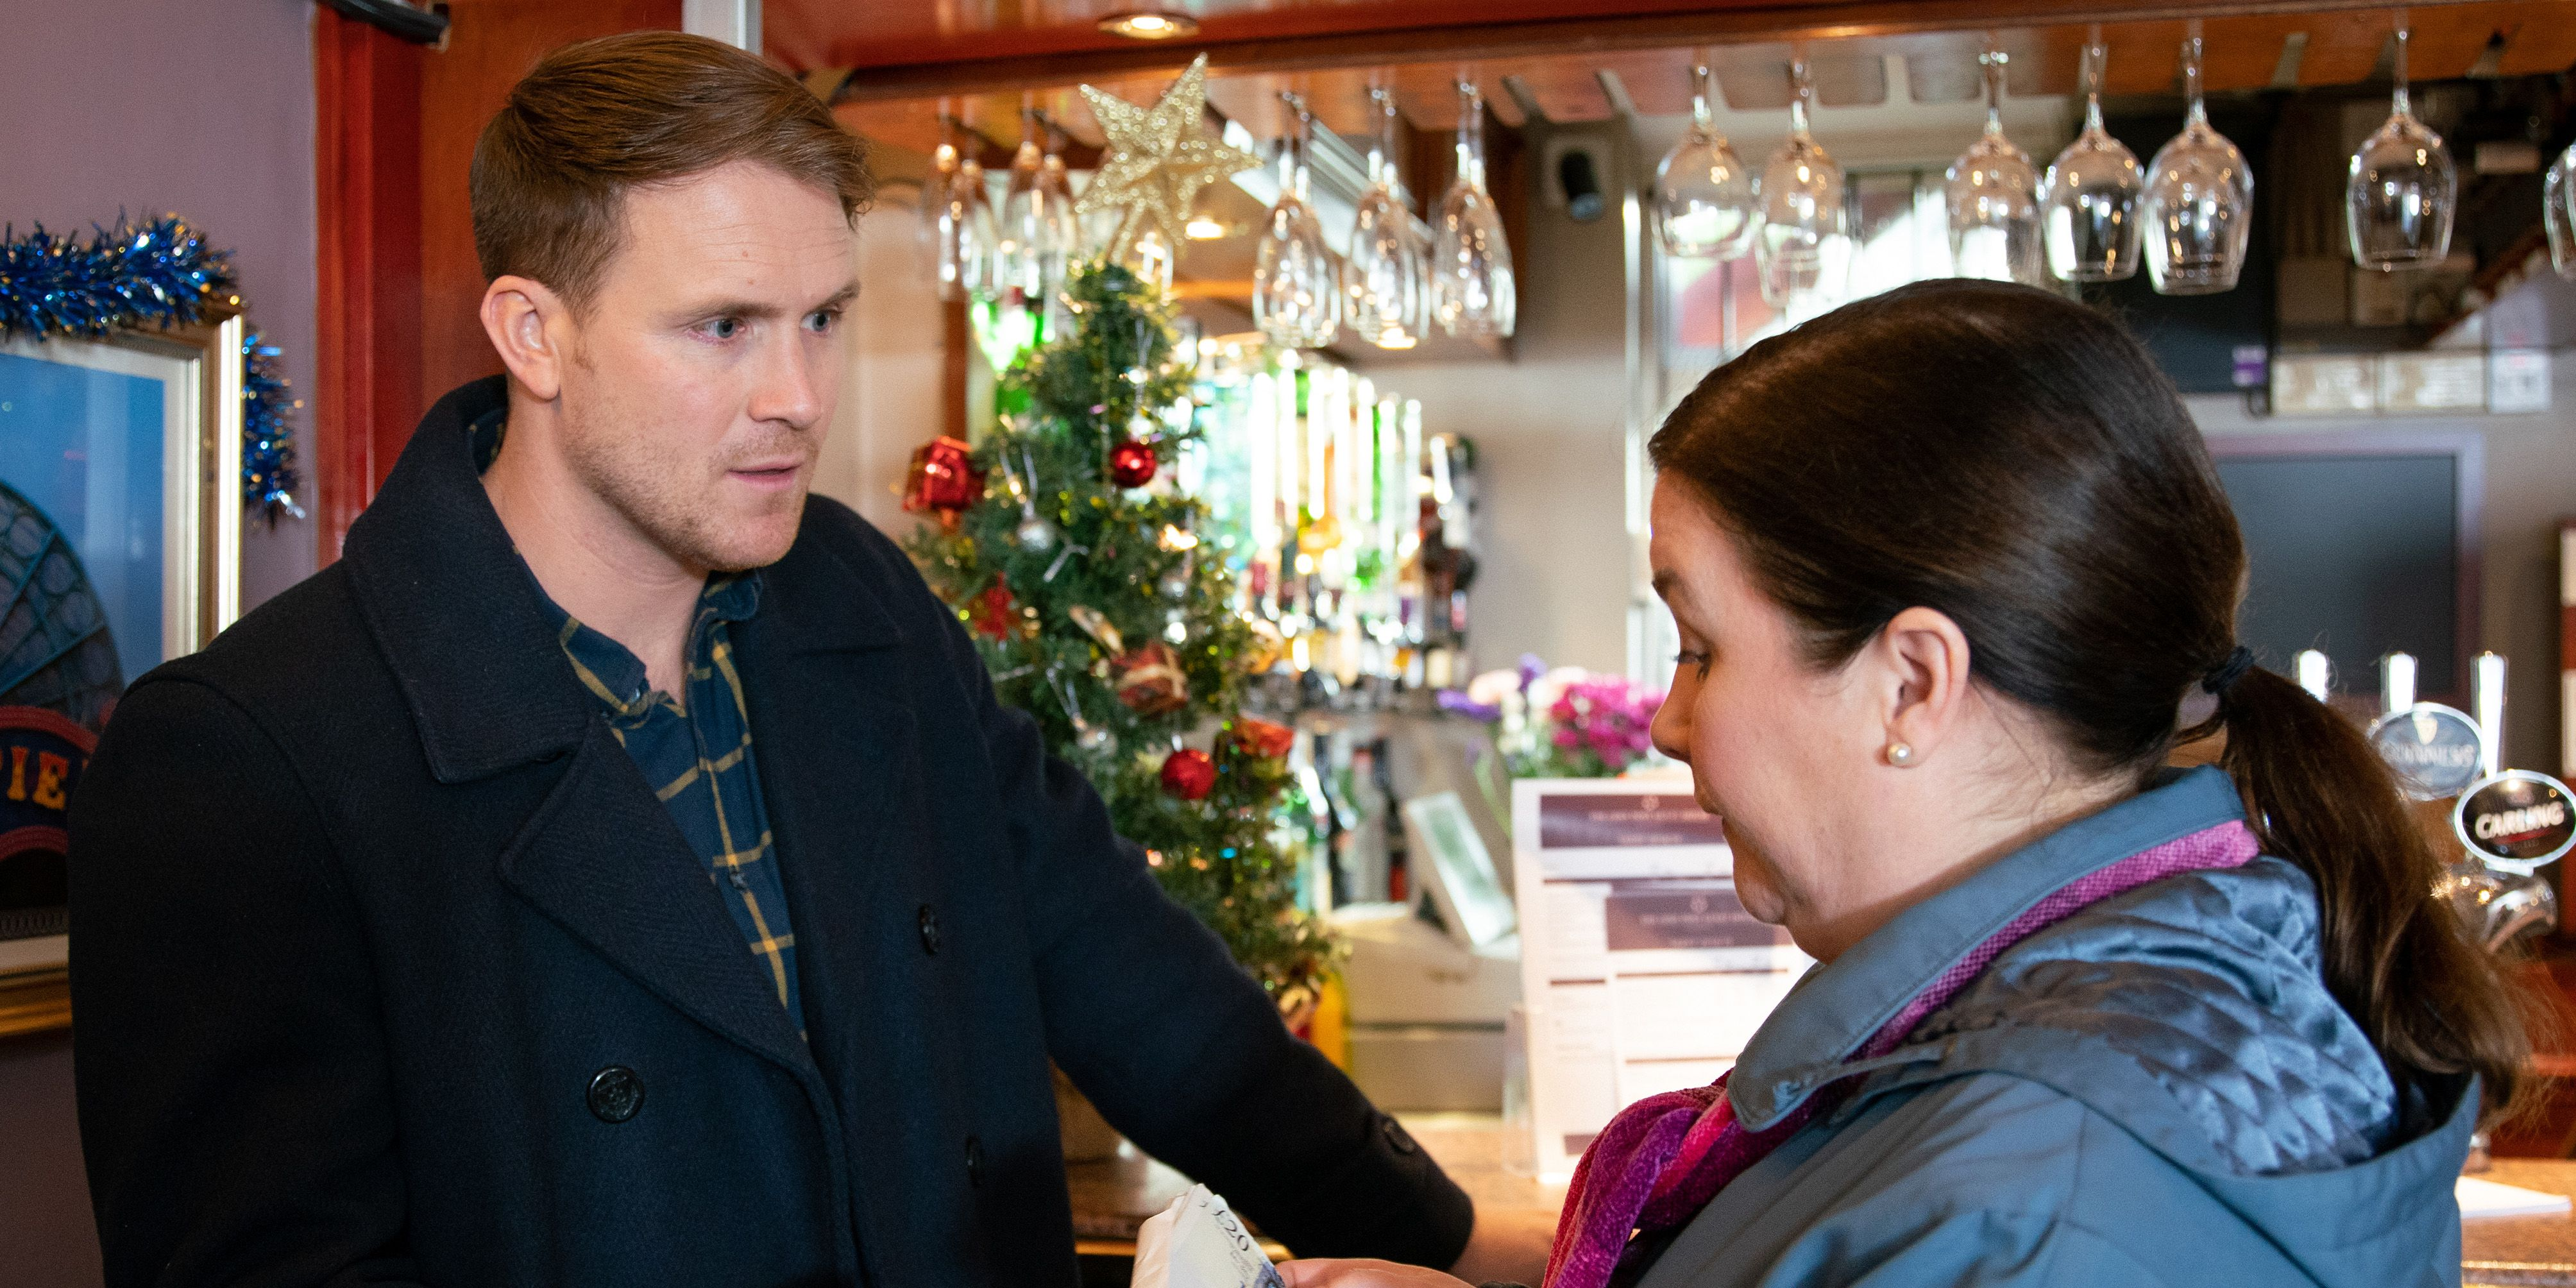 Mary Taylor comes face-to-face with Jude Appleton again in Coronation Street